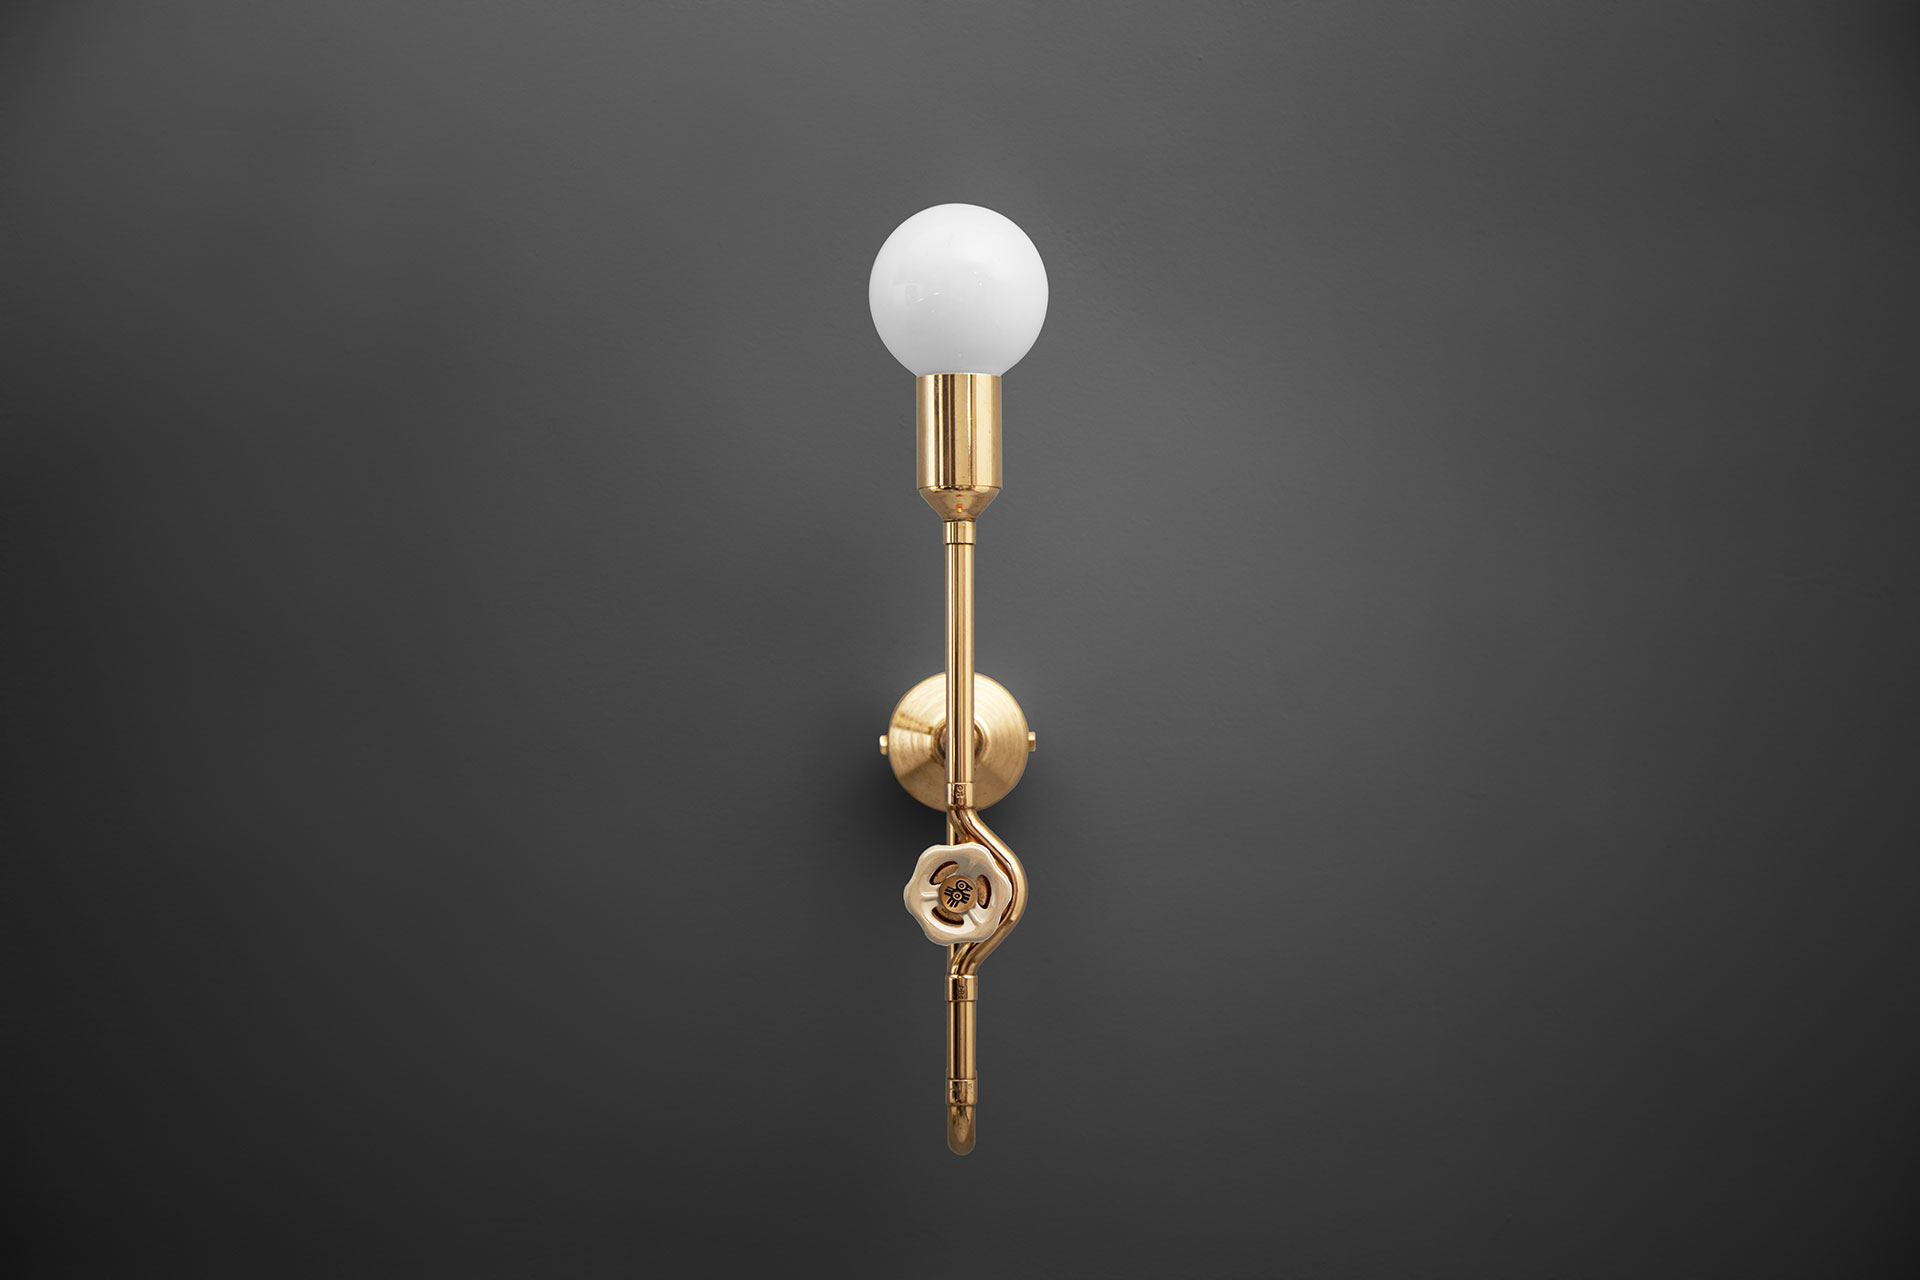 Brass dimmable sconce with vintage ivory knob